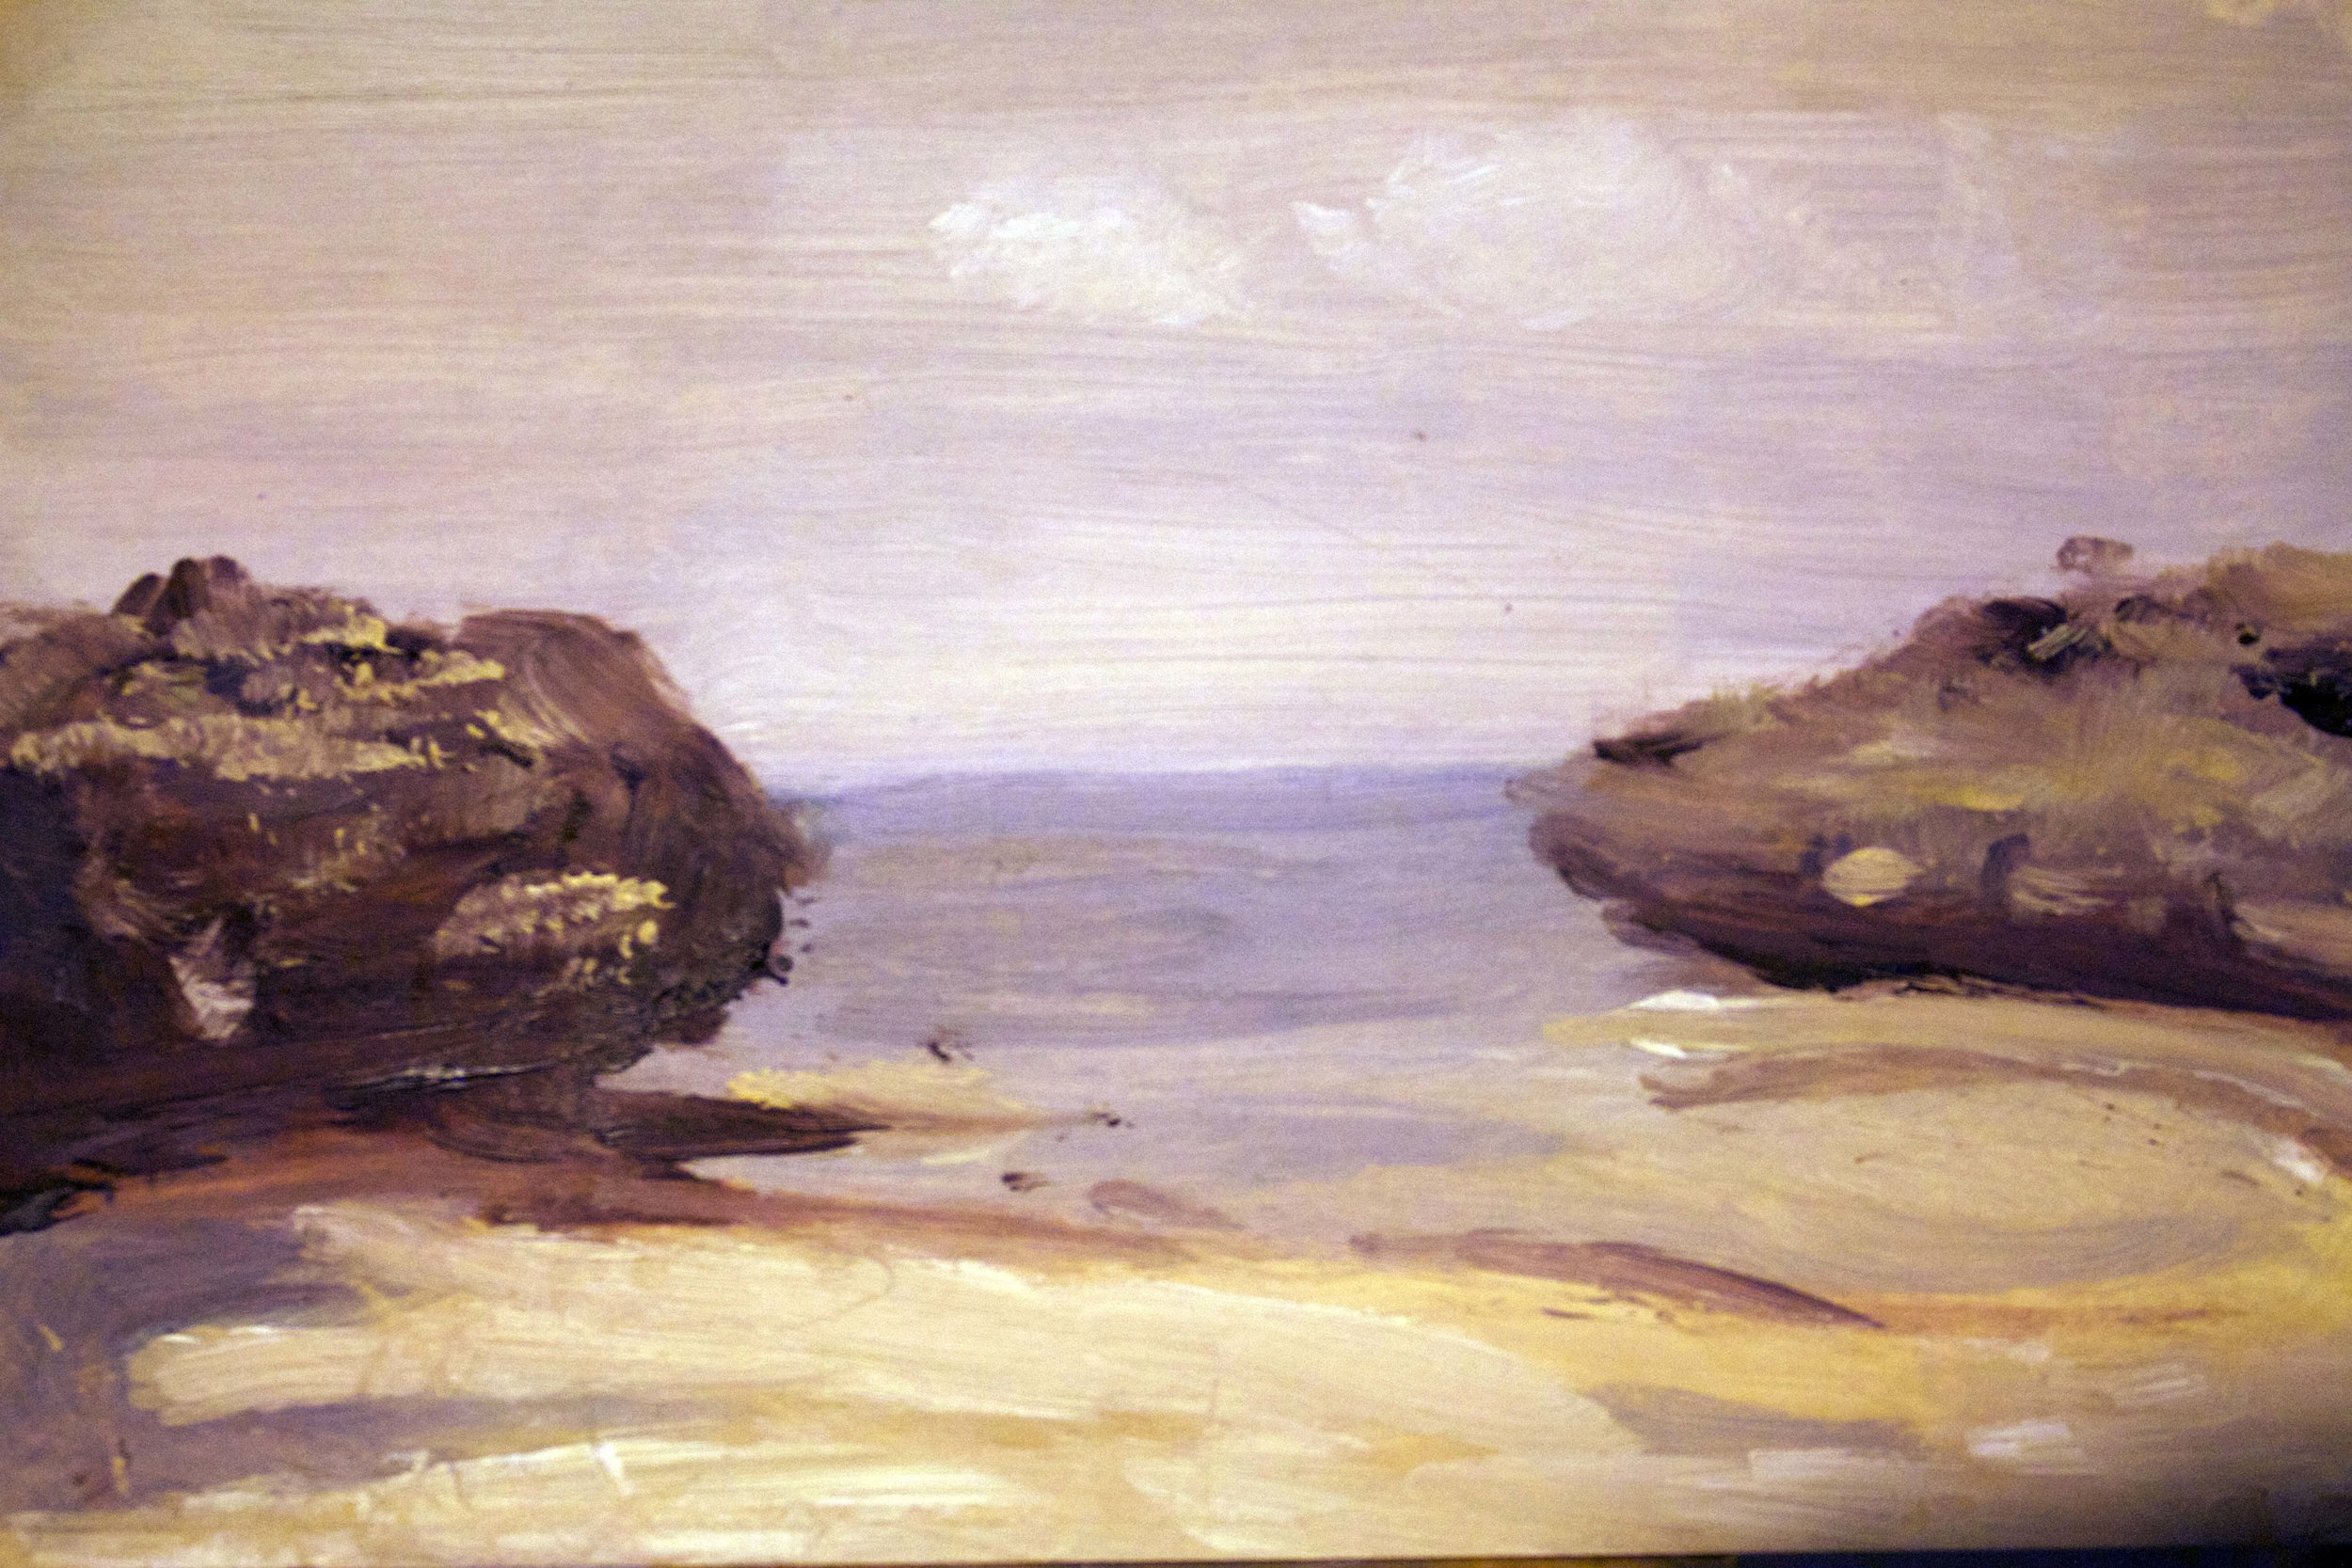 Rock formations - oil on panel, 5x7 in